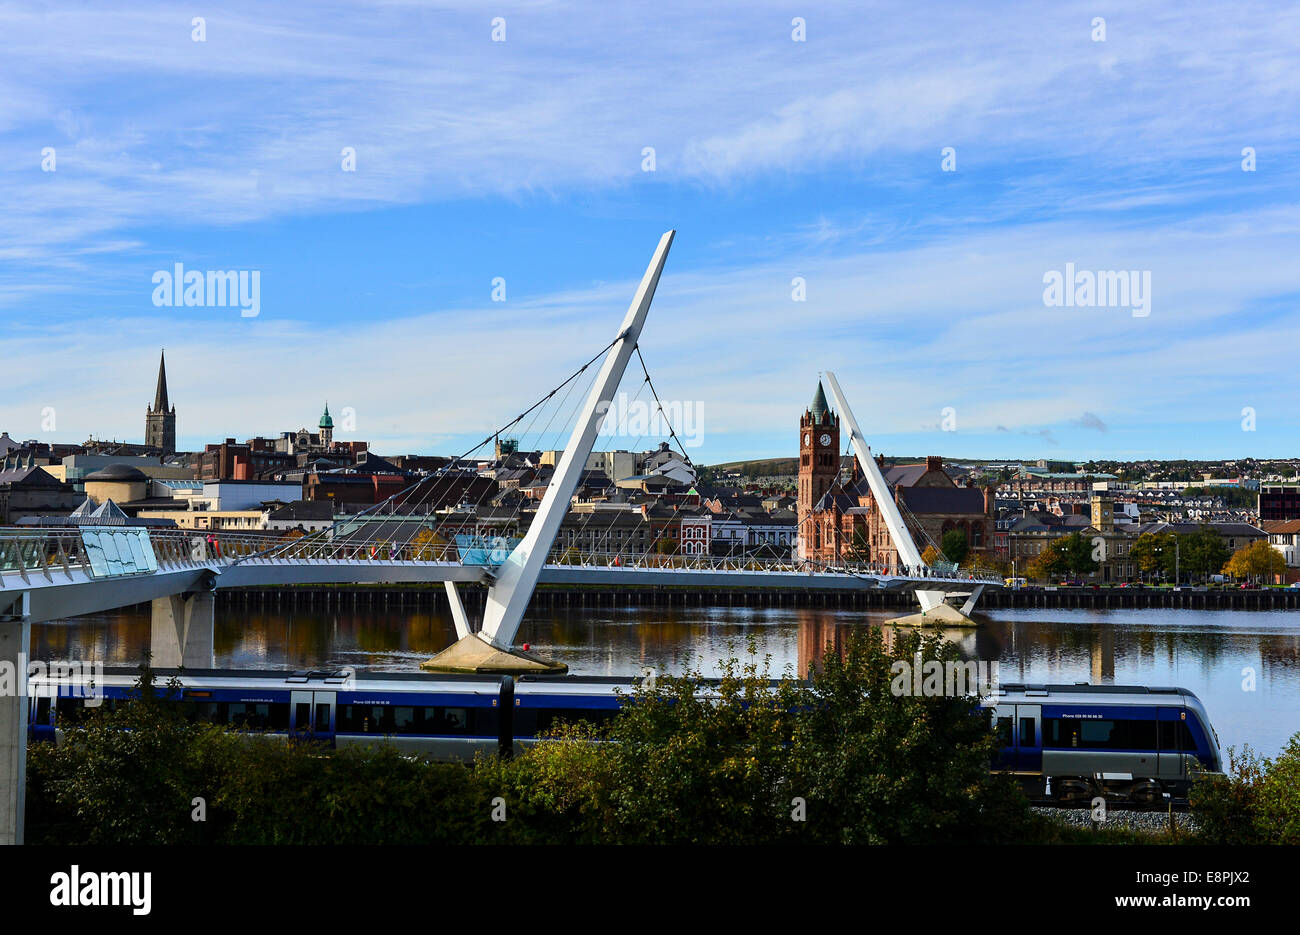 Derry, Londonderry, Northern Ireland. 13th Octc, 2014. UK weather: Autumn sunshine. The mid-day Londonderry to Belfast - Stock Image